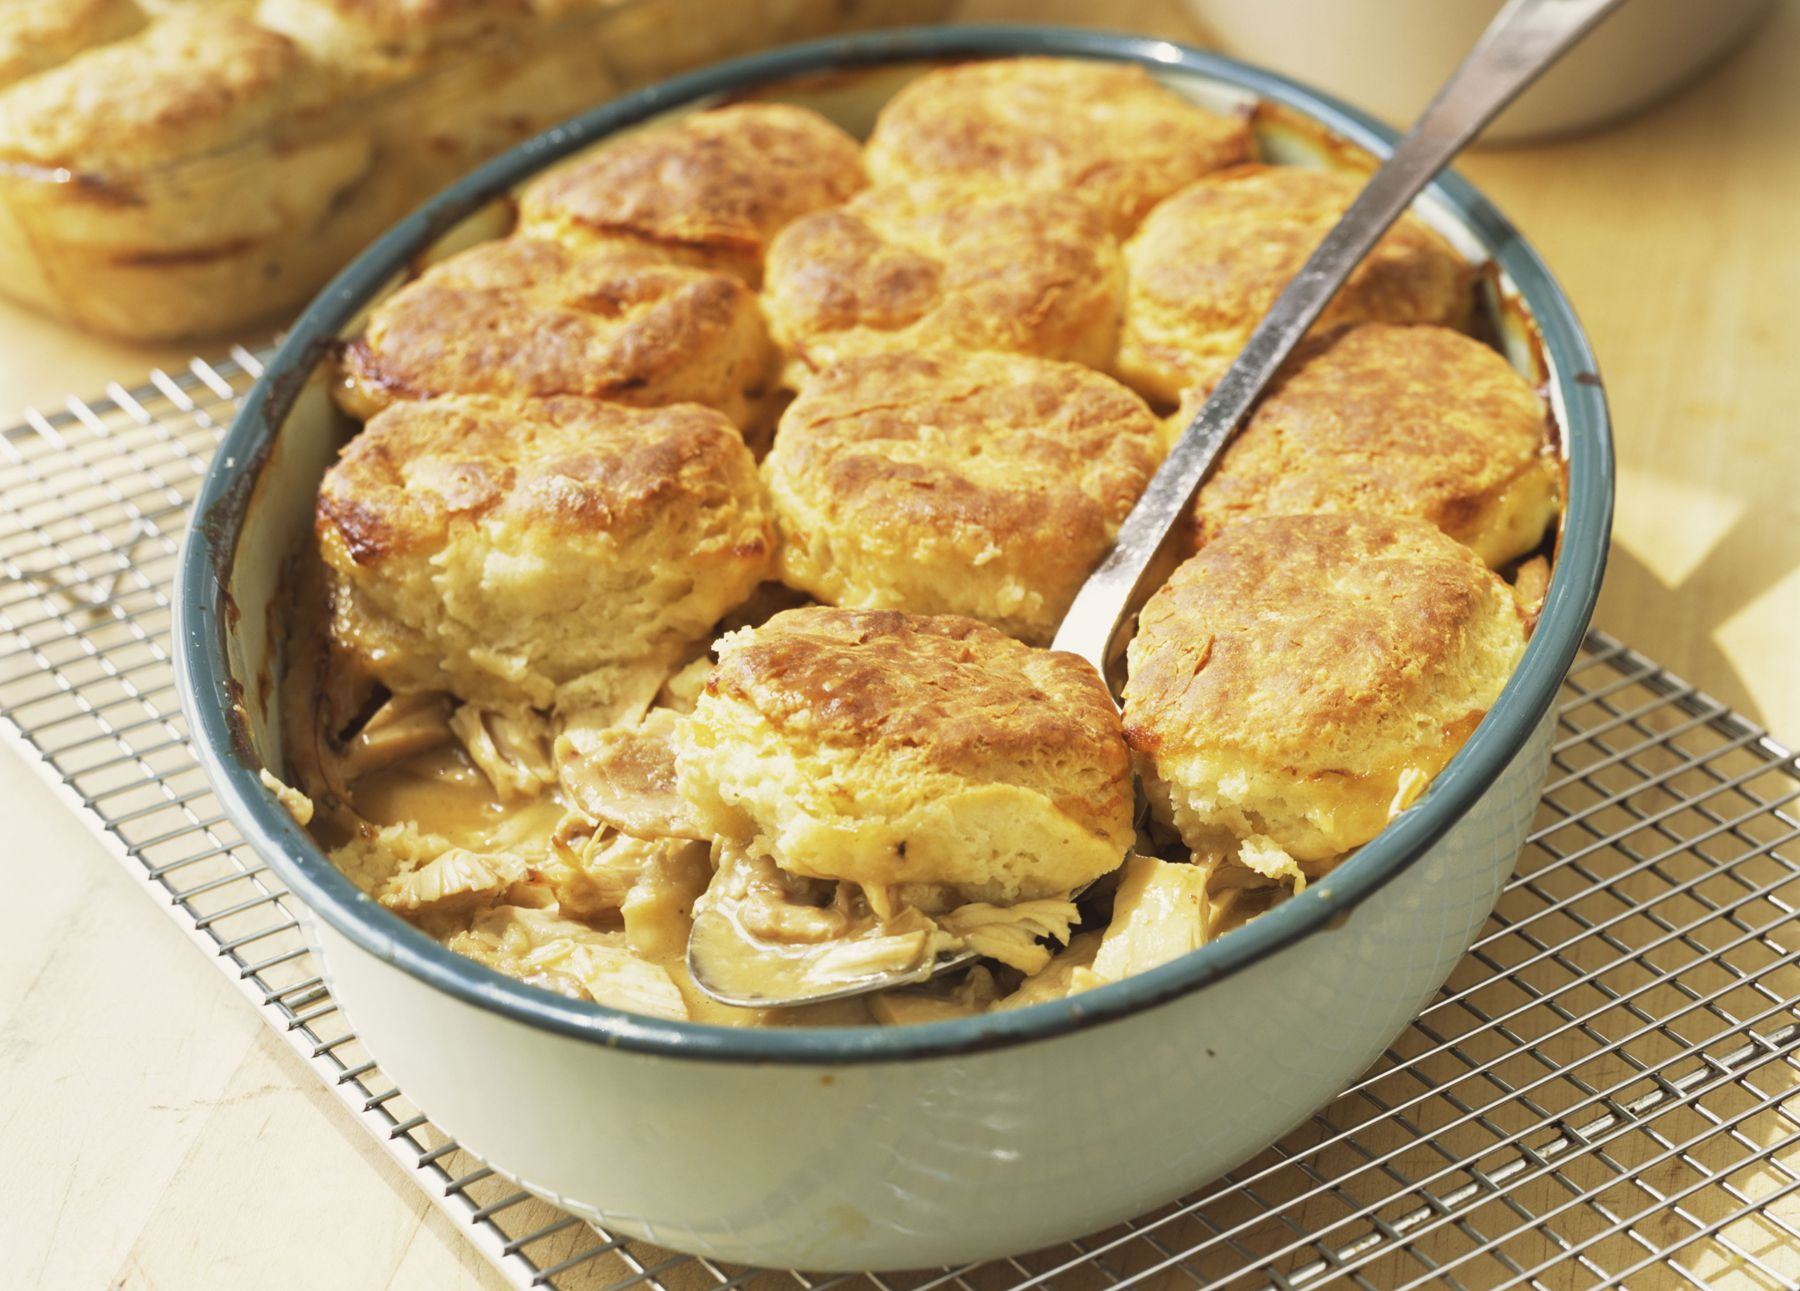 Biscuit Casserole Recipes  Fast and Easy Chicken and Biscuit Casserole Recipe